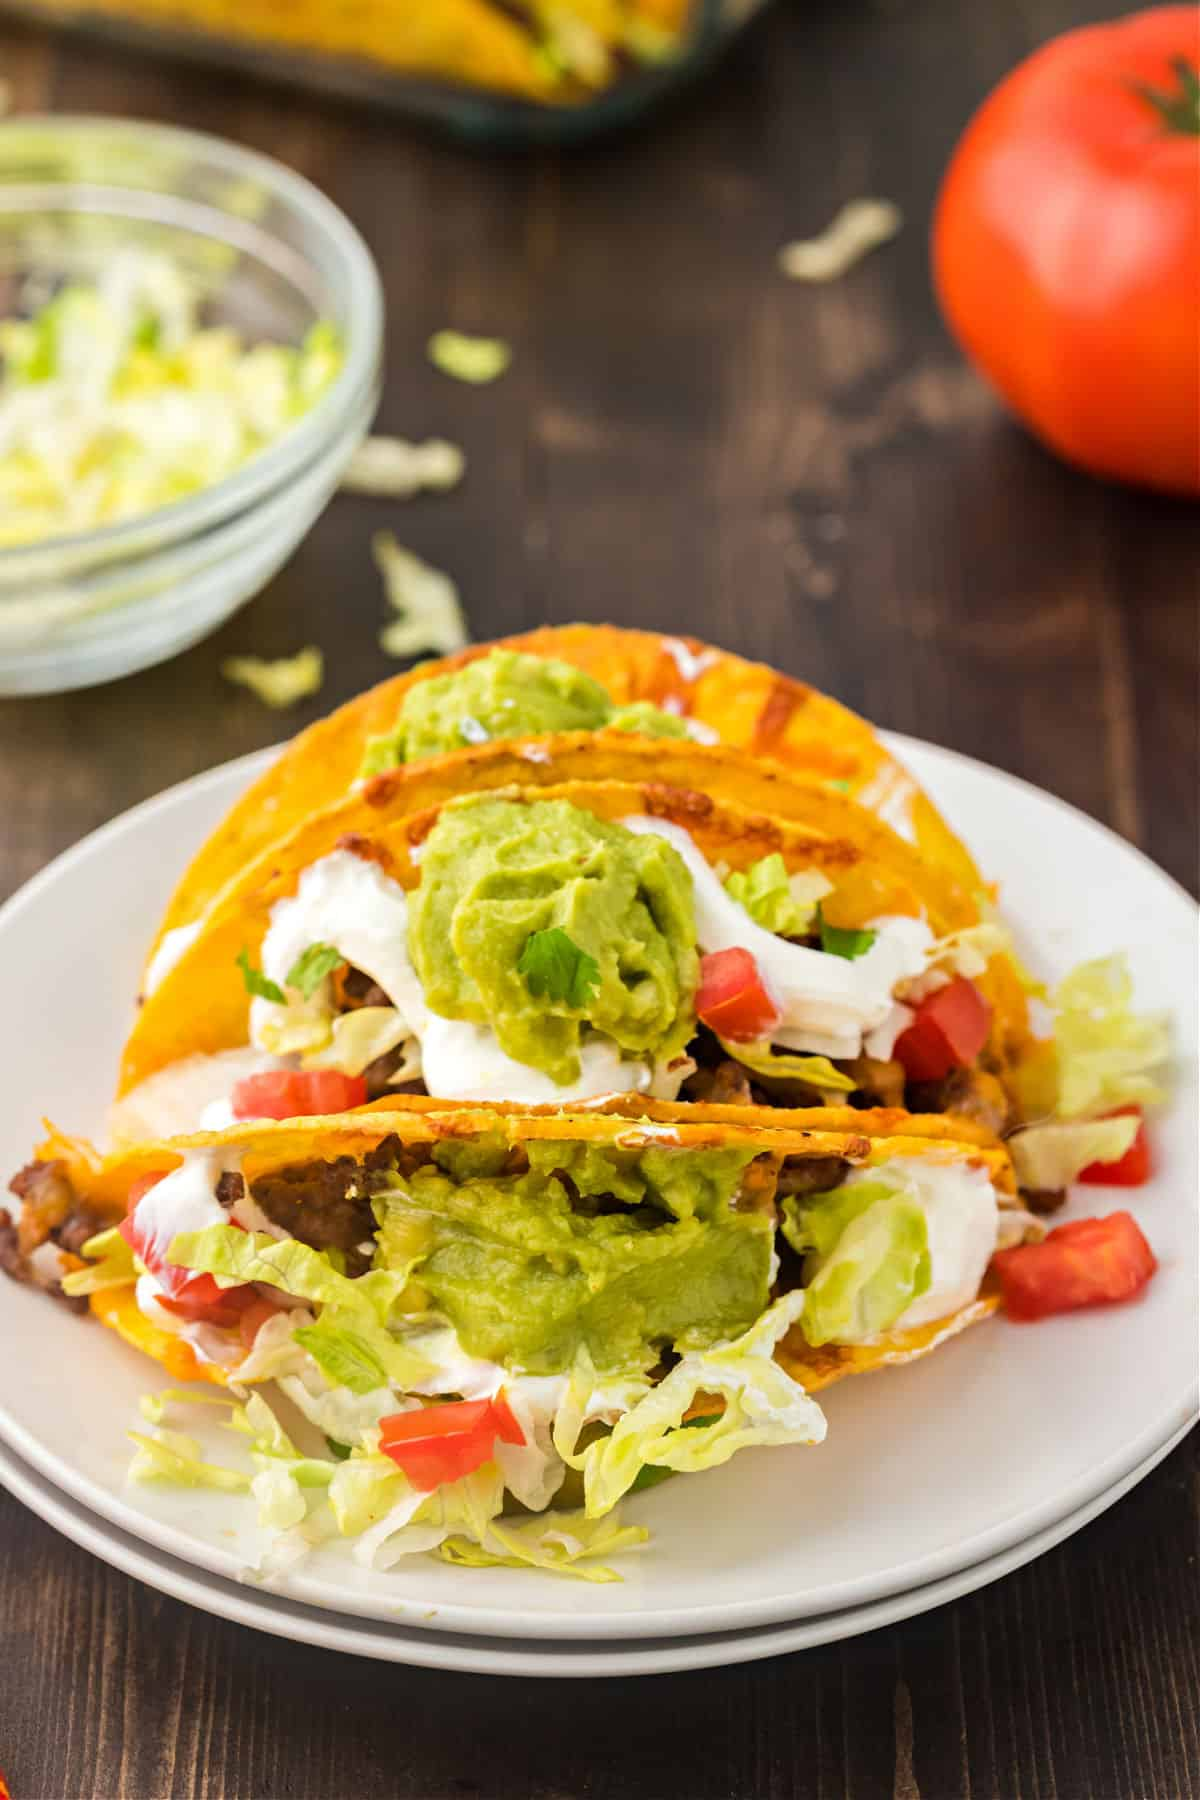 Baked tacos served on a white plate with lettuce, tomato, sour cream, and guacamole.